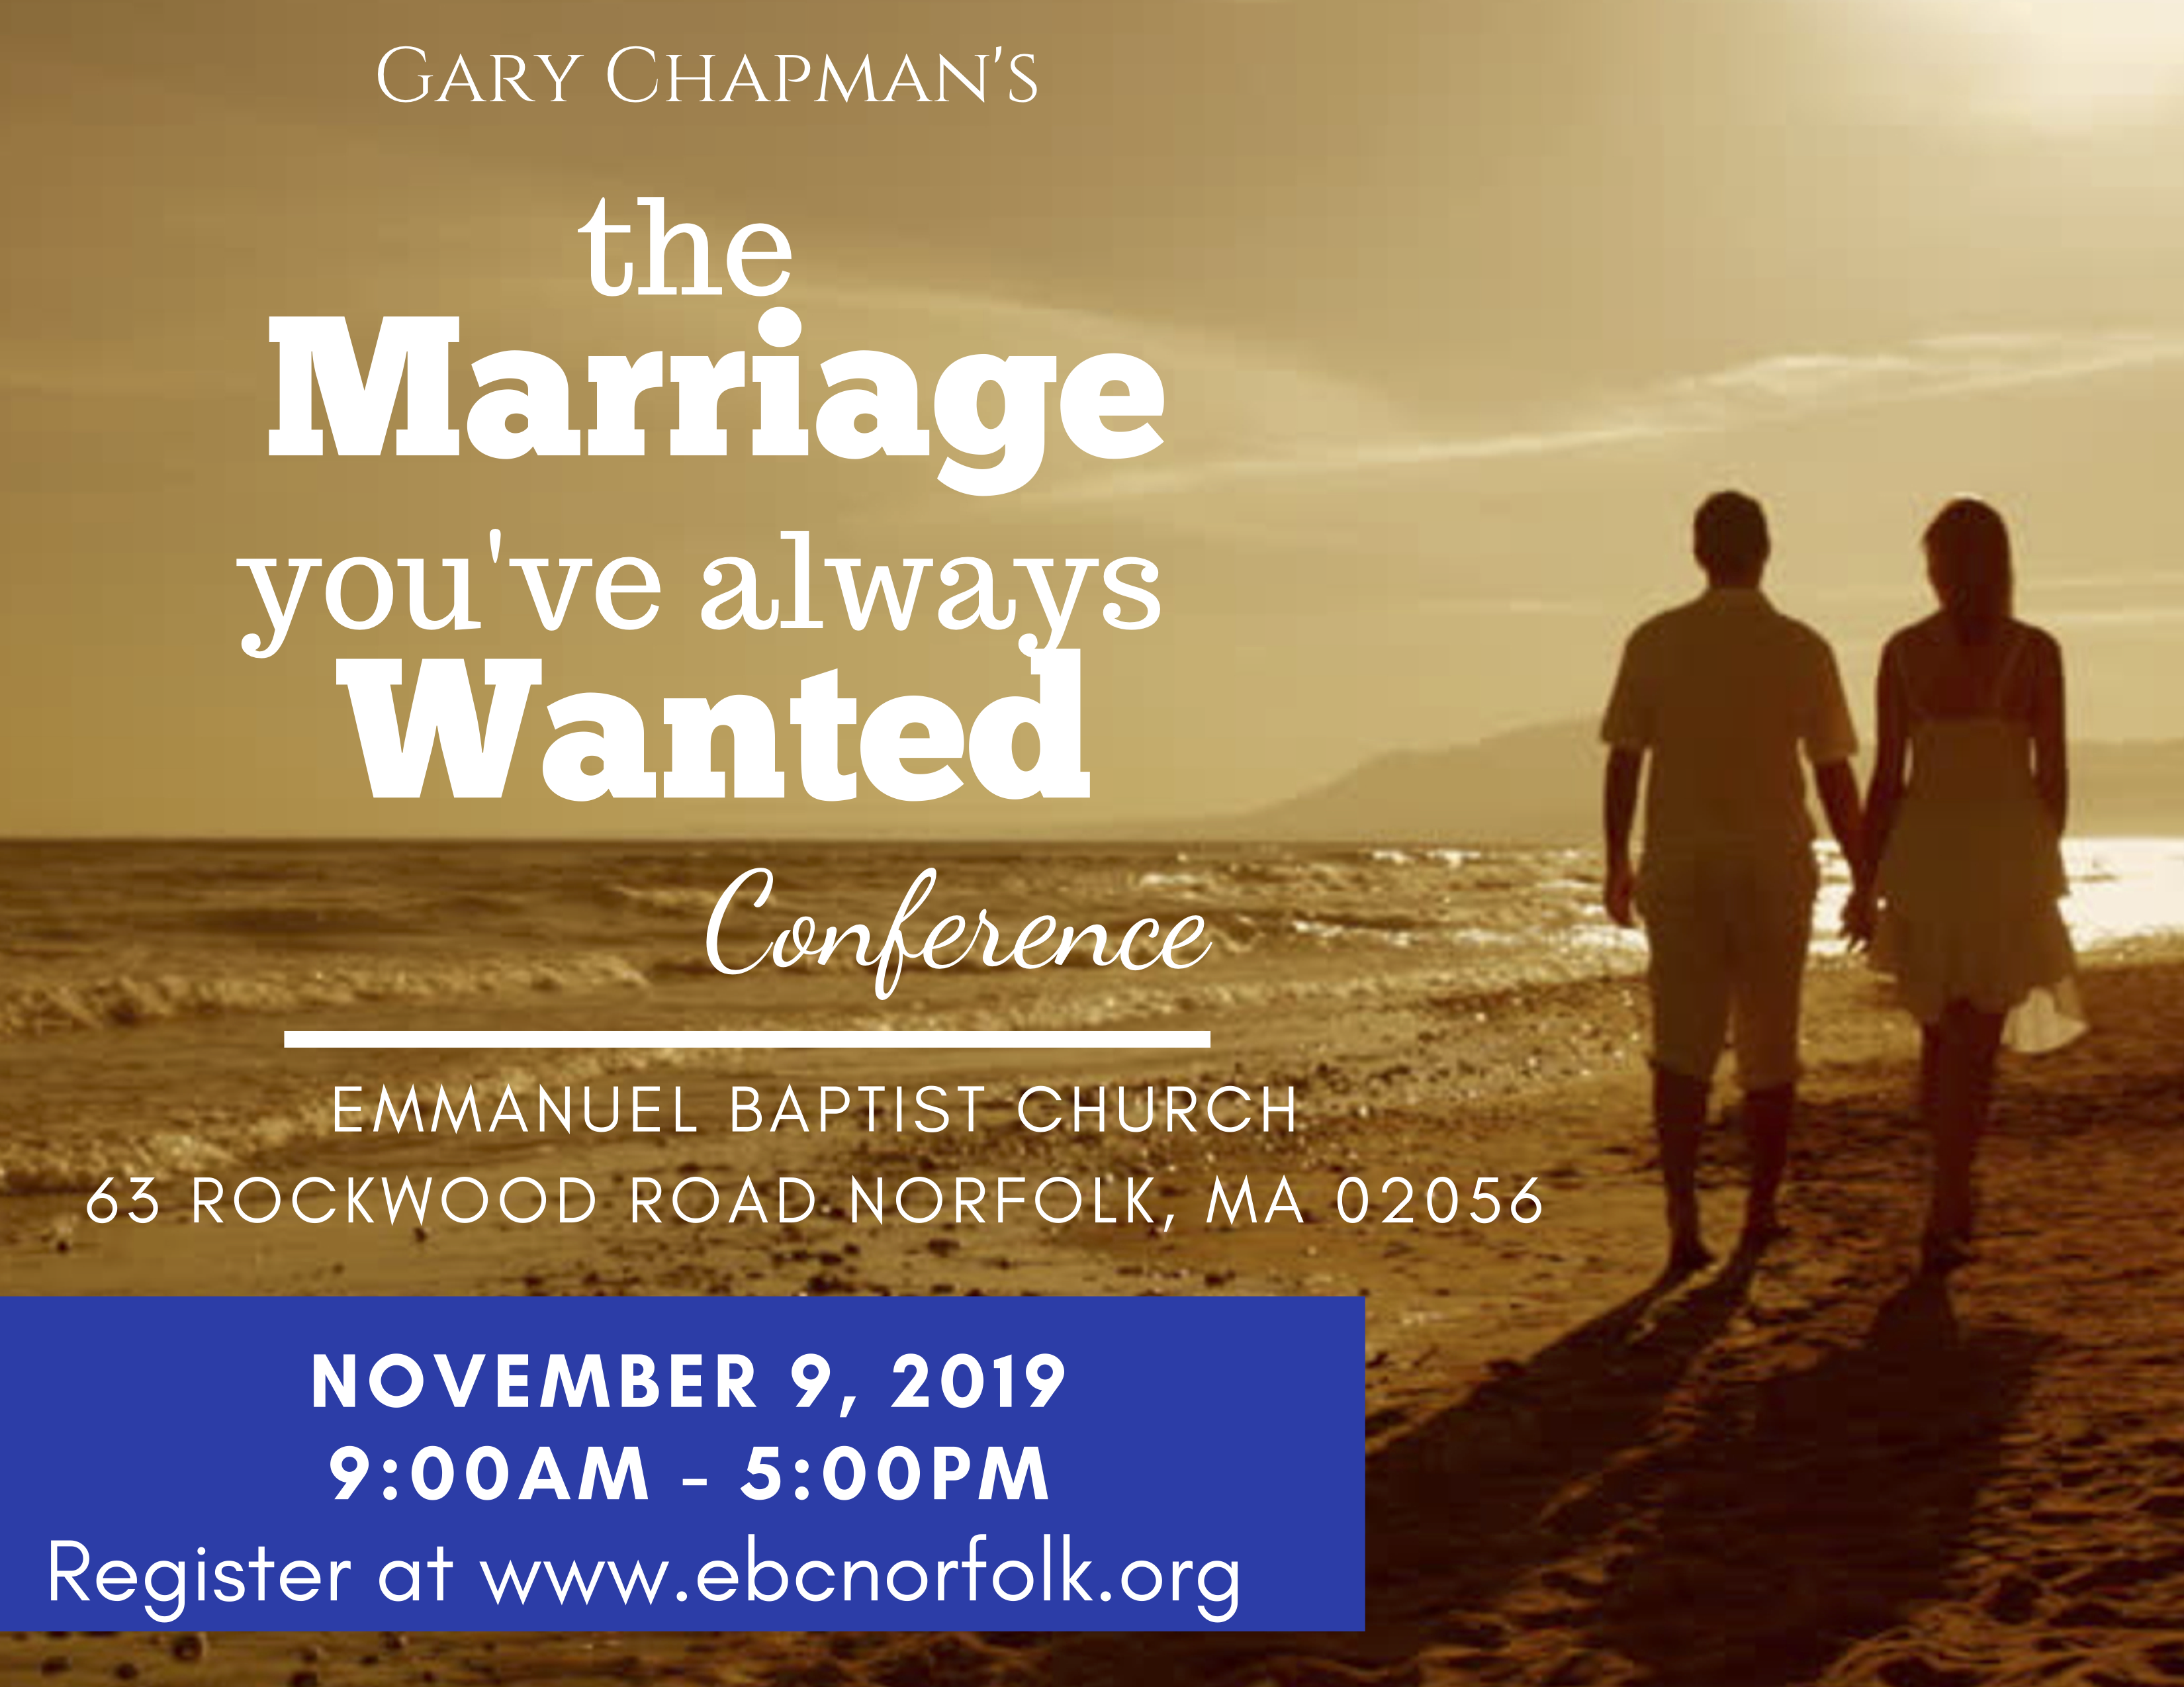 Marriage Conference (2019-11-09) graphic (hi-res) image